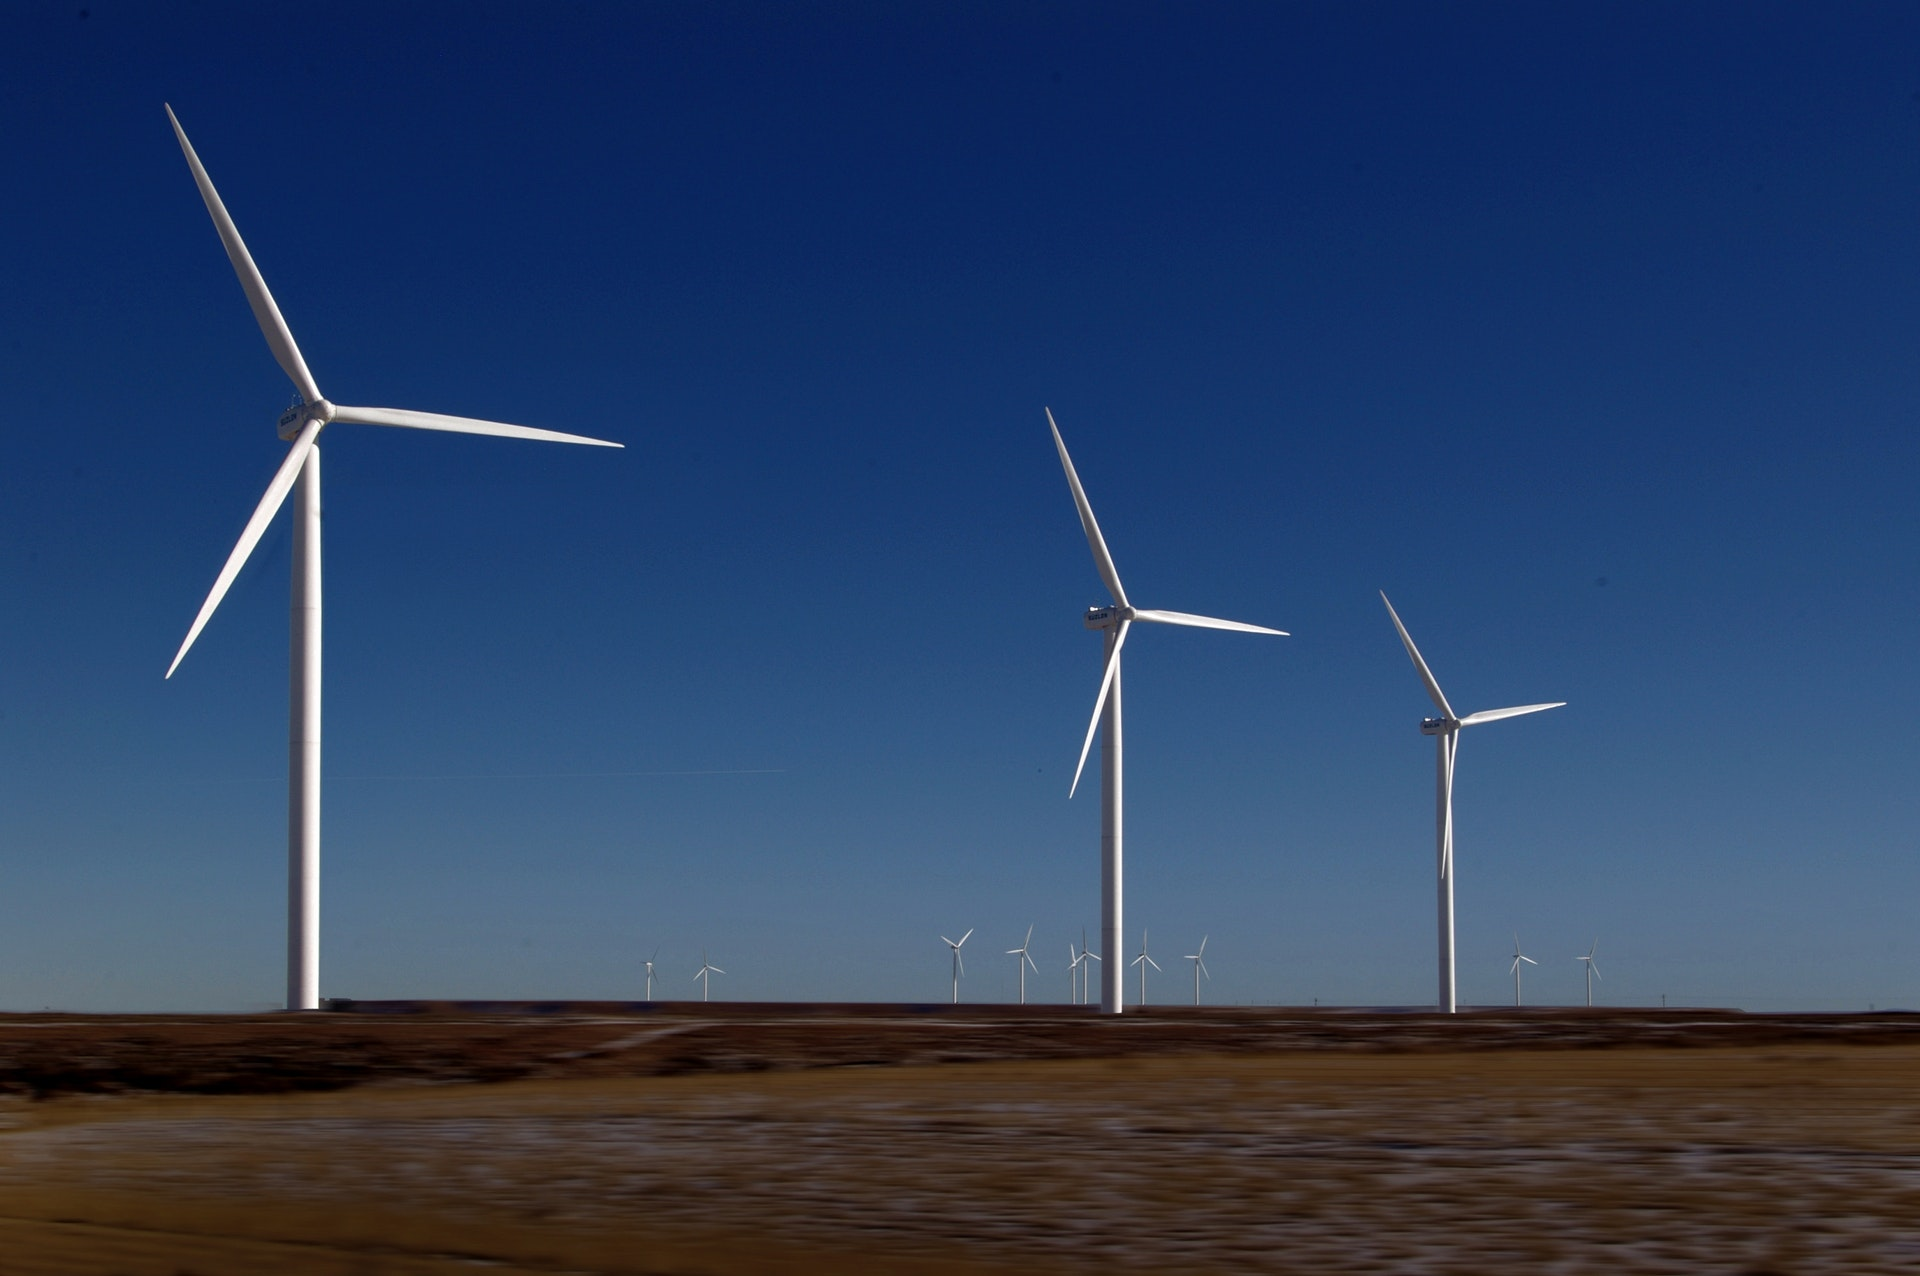 Wind Turbines - Wind Turbine Service Technicians - The 14 Best Engineering Jobs For The Future